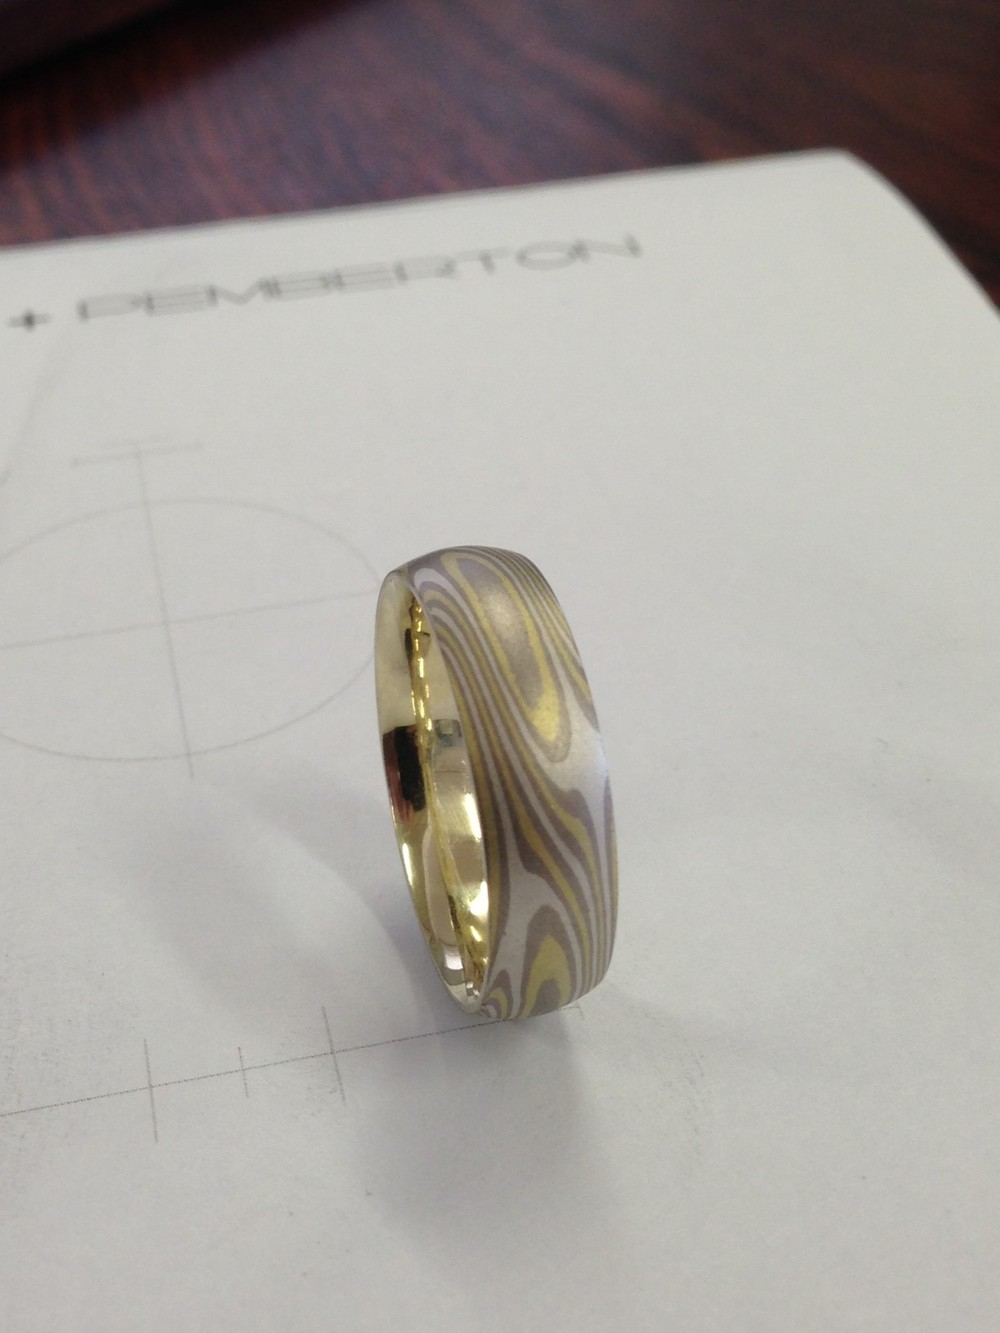 Just finished Green Gold, White Gold, Silver Mokume Gane ring